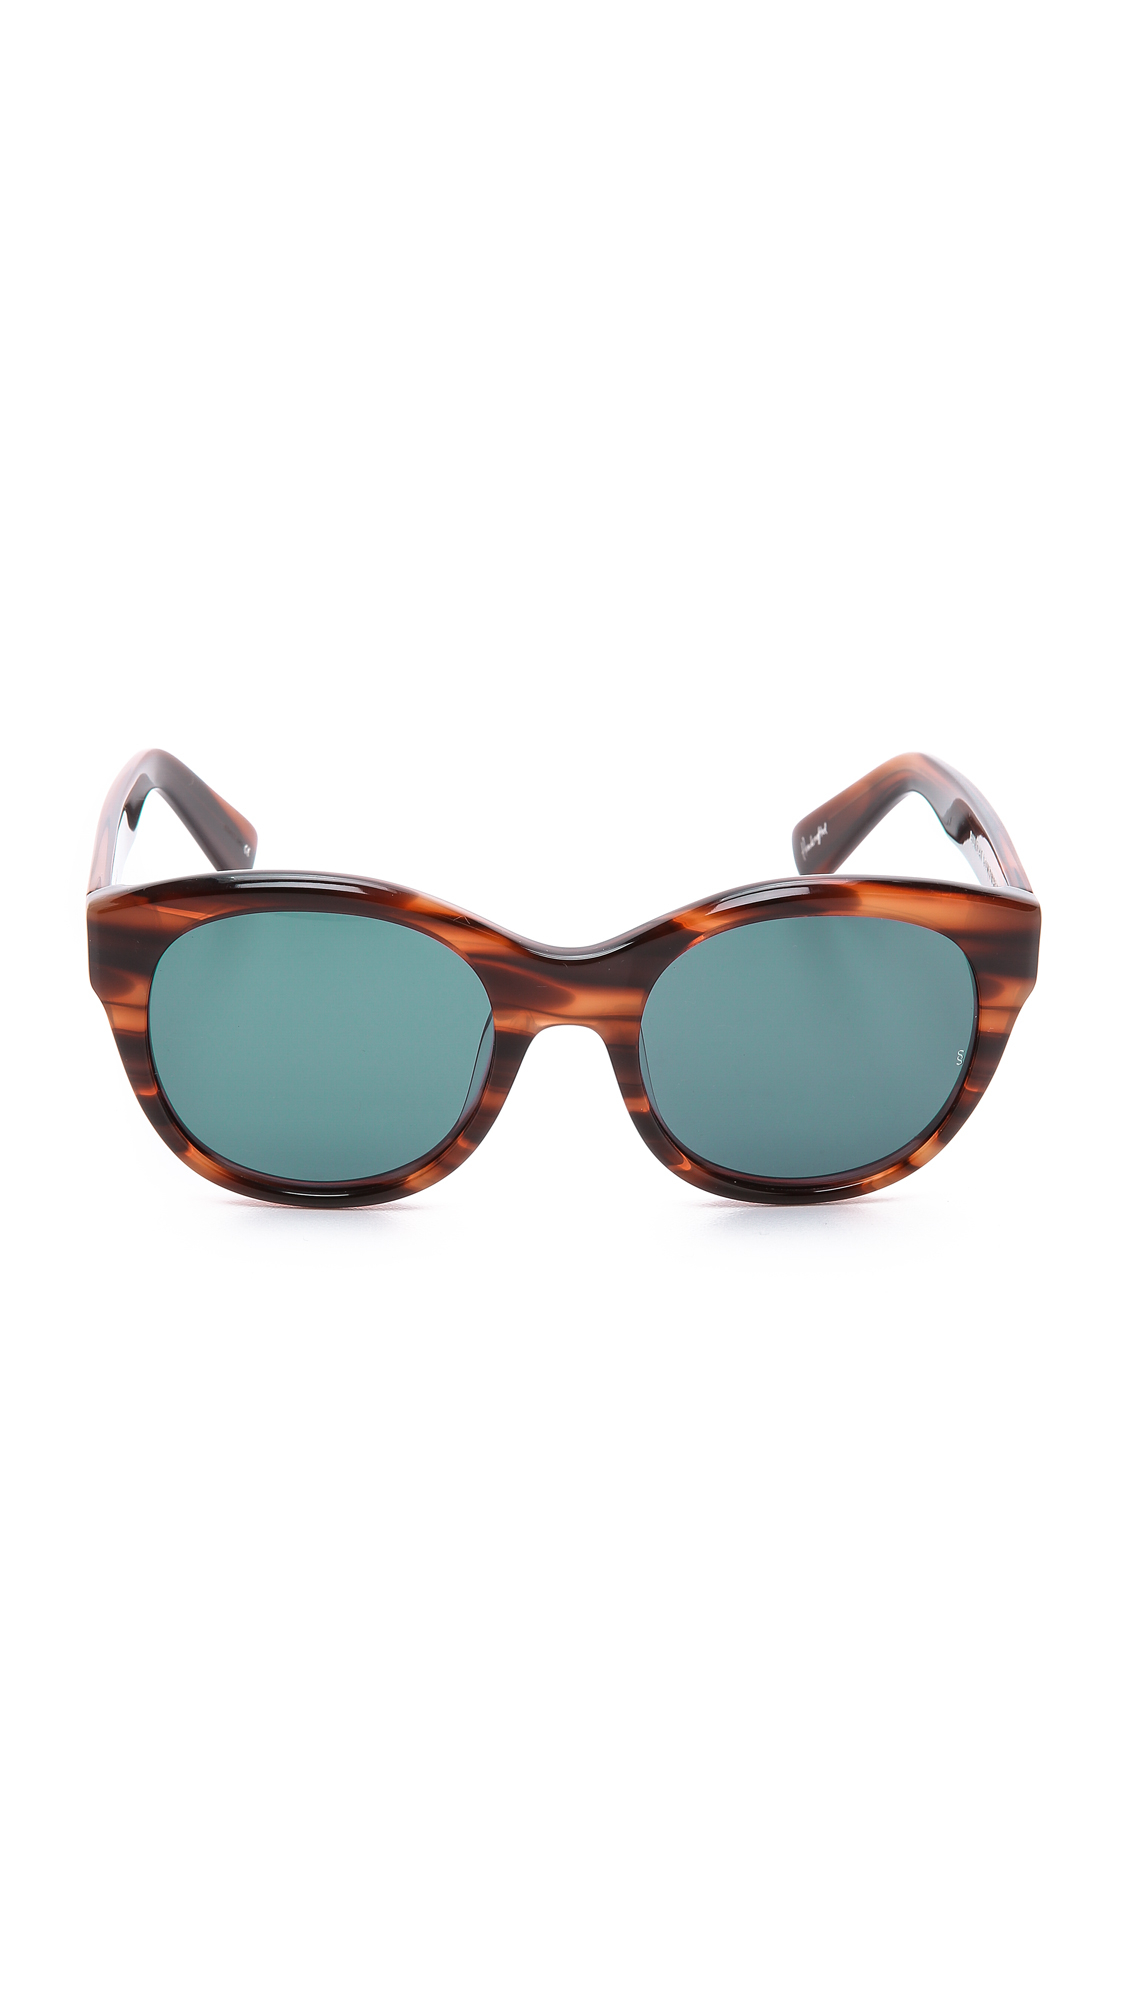 Sunday Somewhere Dolly Sunglasses in Brown